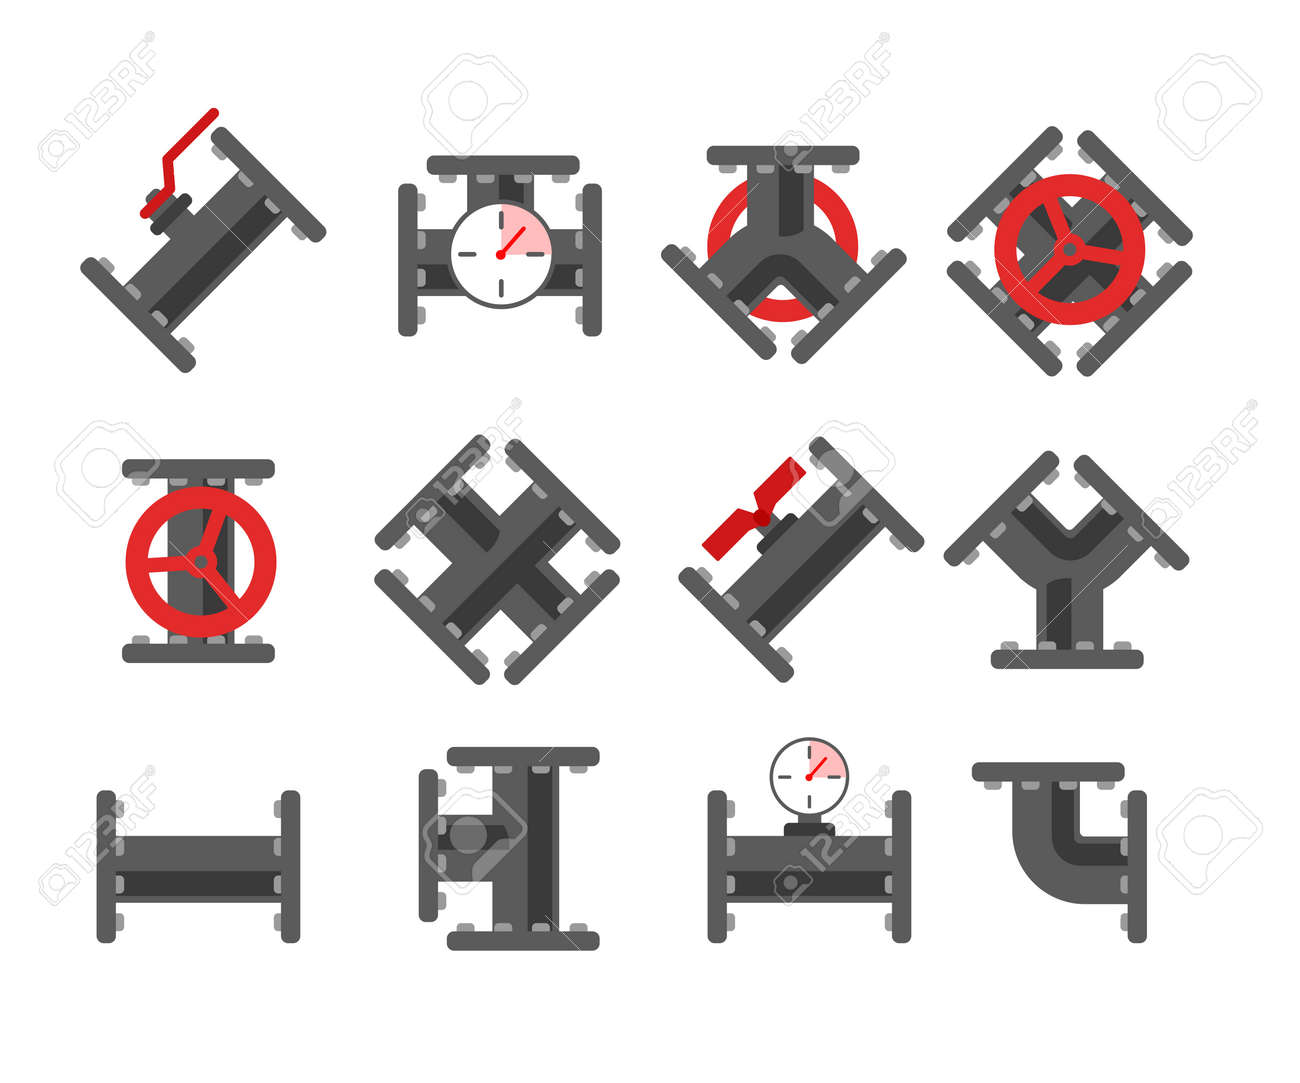 Pipe fitting vector set. Pipeline vector illustration. Pipe fitting for repair home. Gas pipe. Water pipe set. Sewerage vector illustration. Water drain or drainage system - 55514655